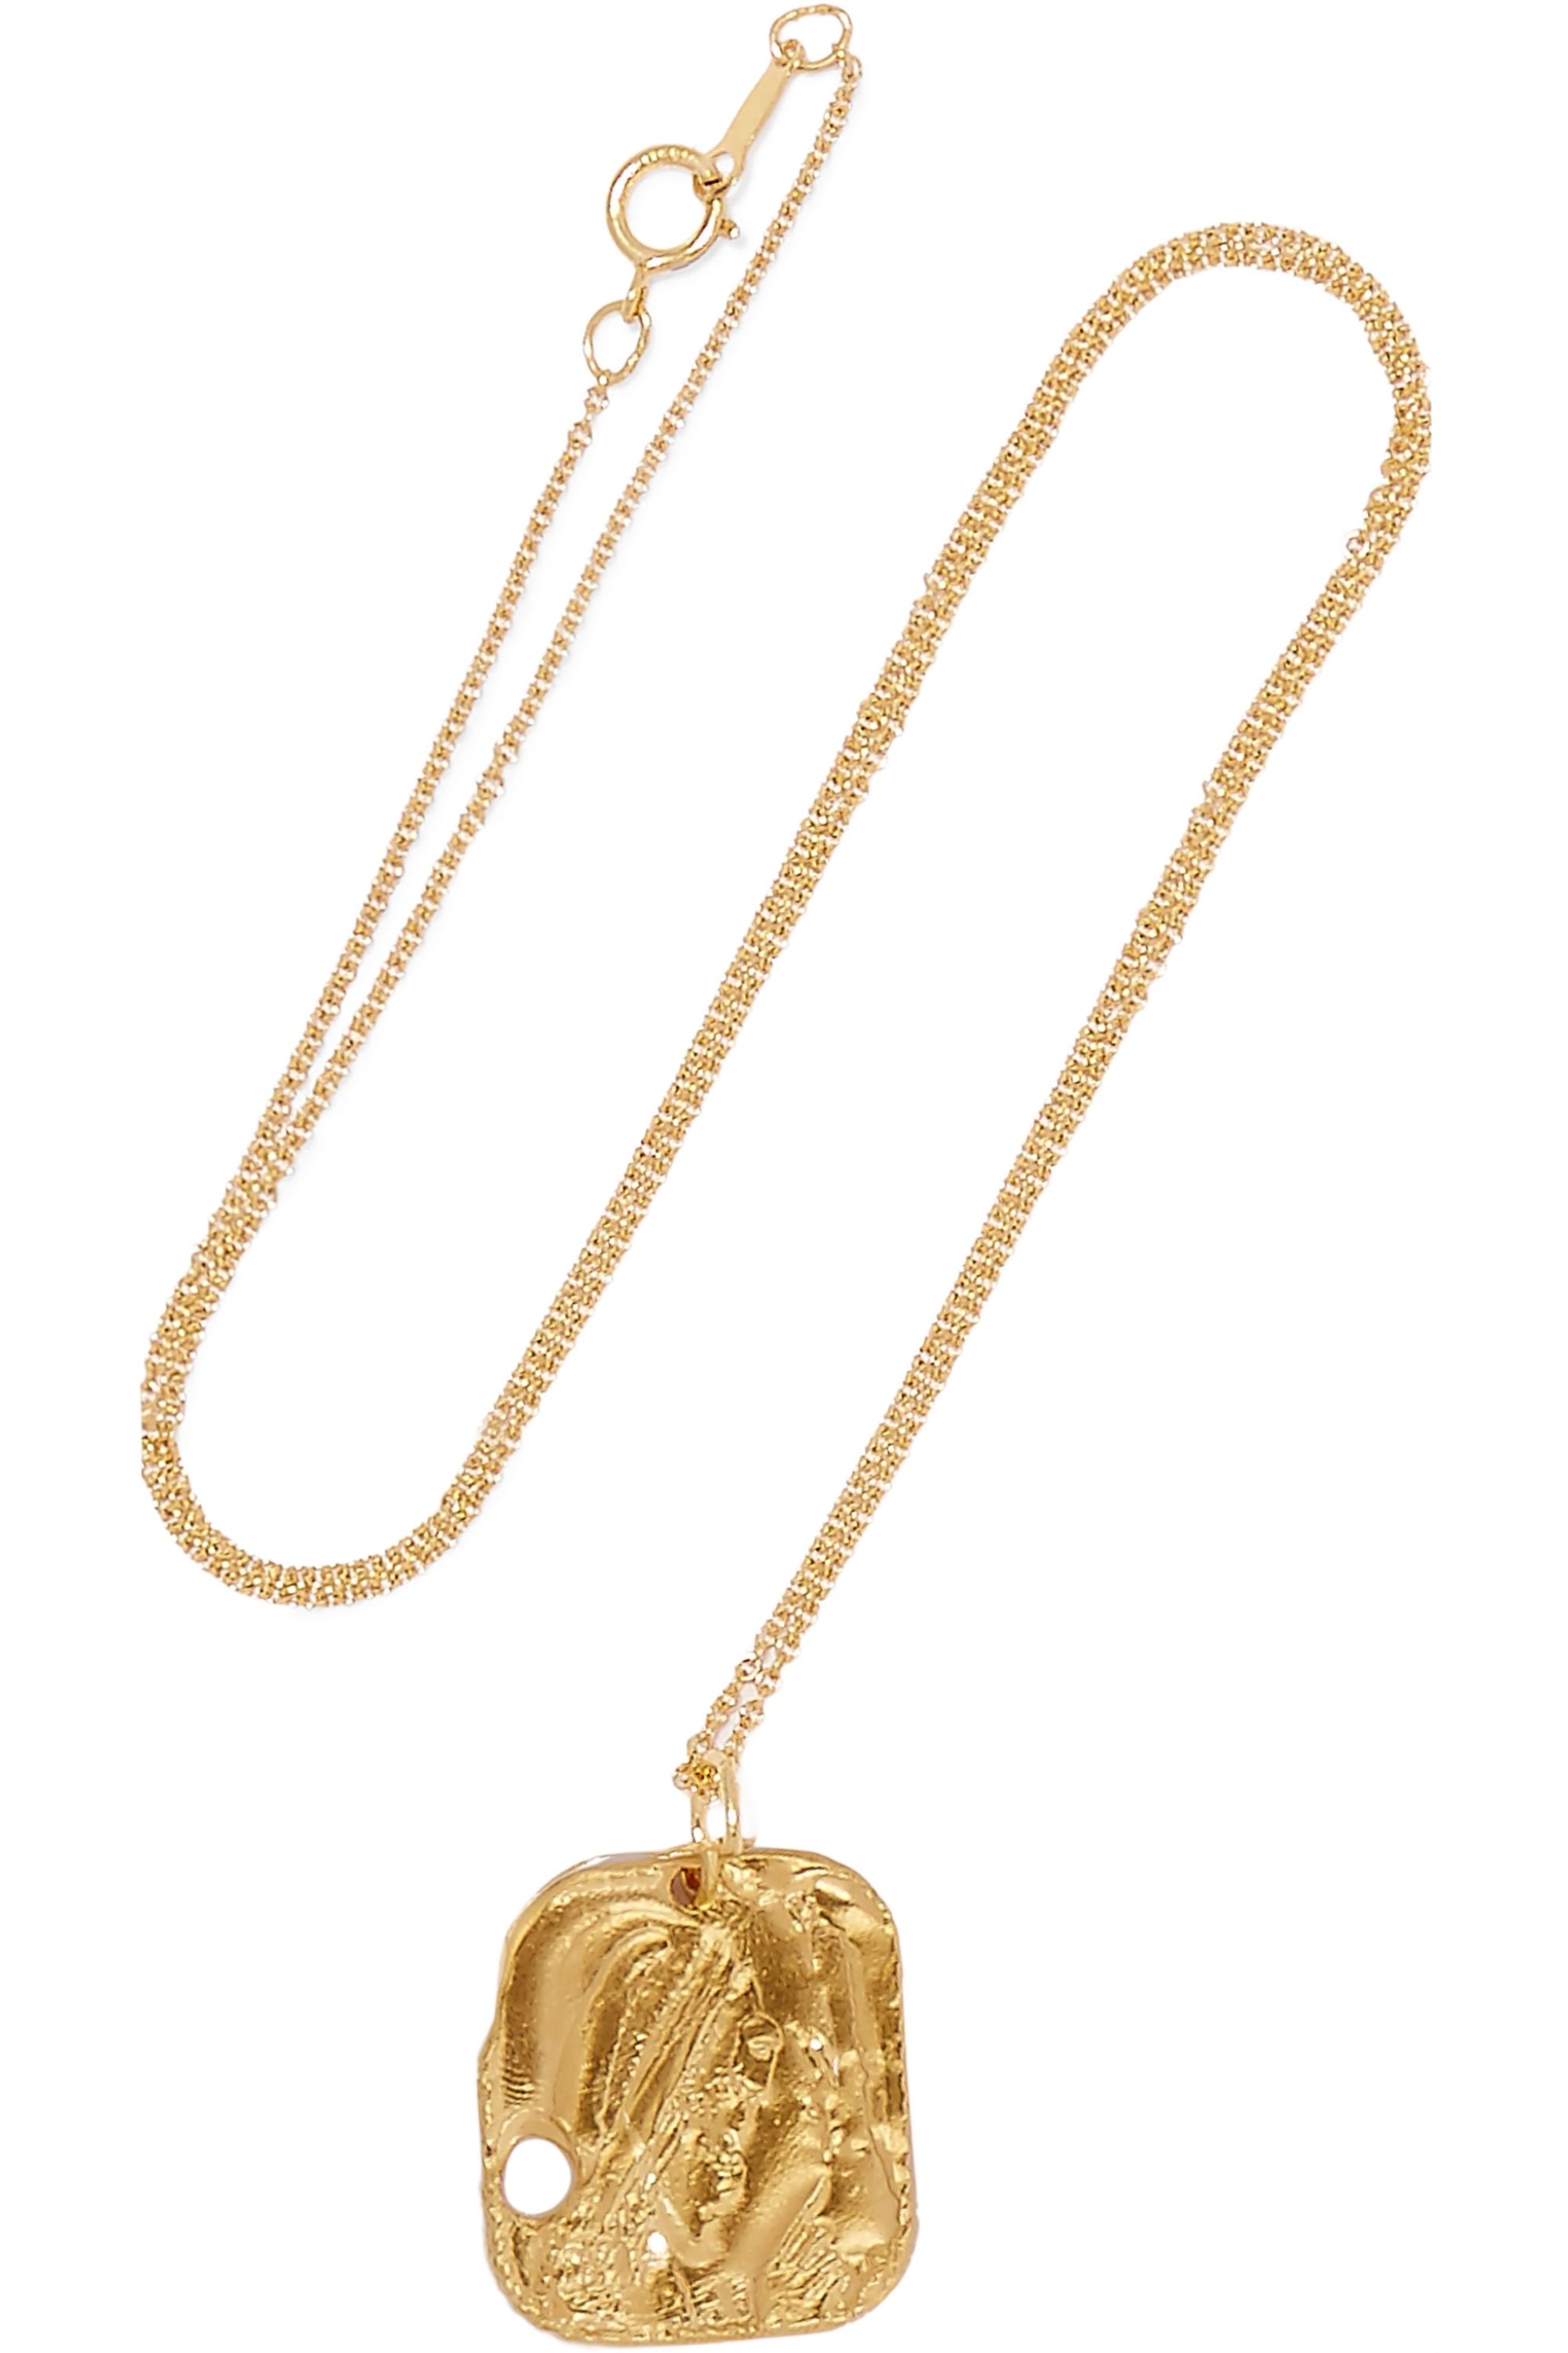 Alighieri The Sorcerer gold-plated necklace